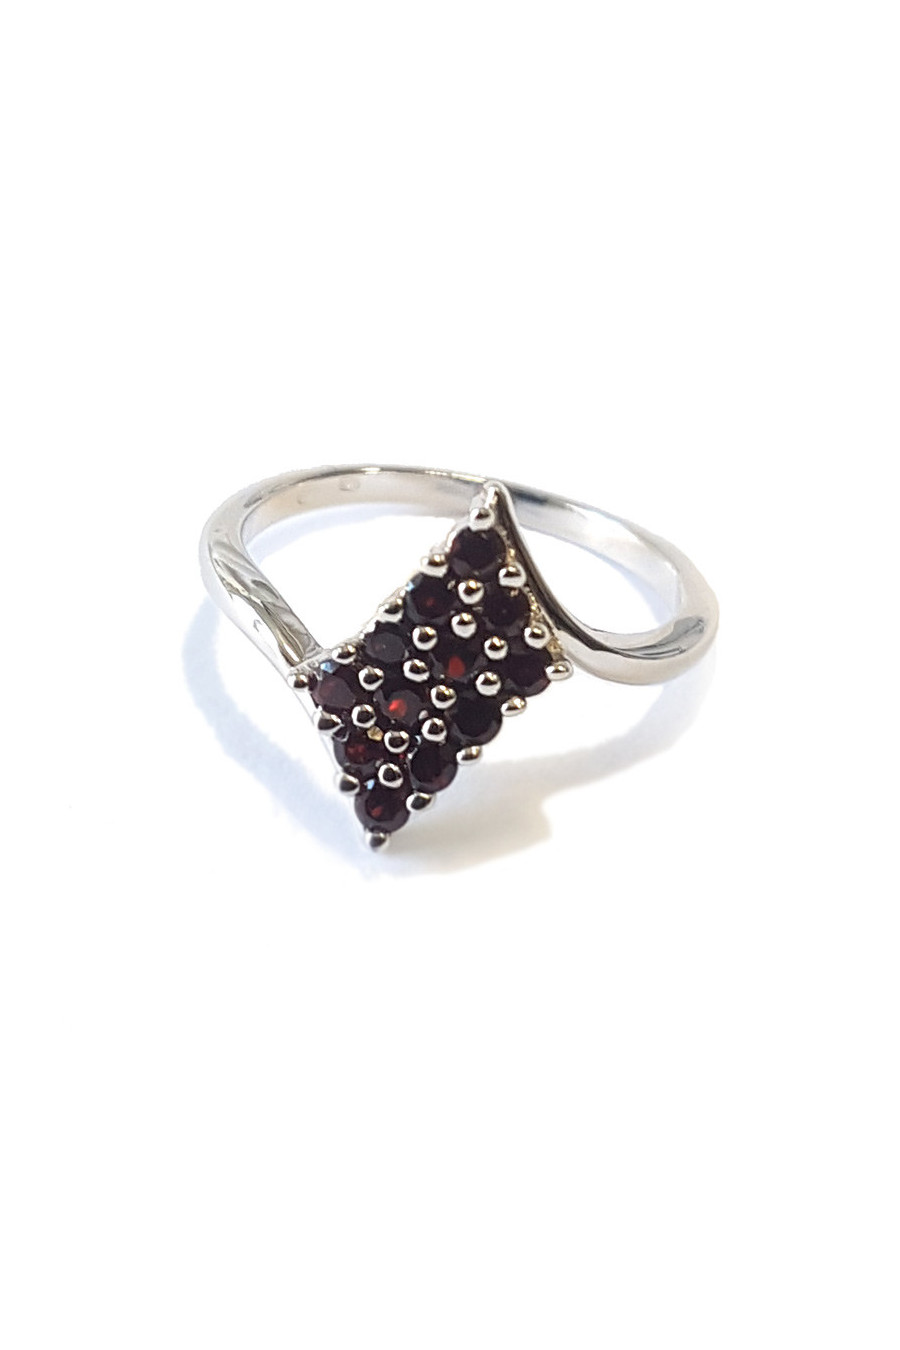 Sterling silver ring with garnet